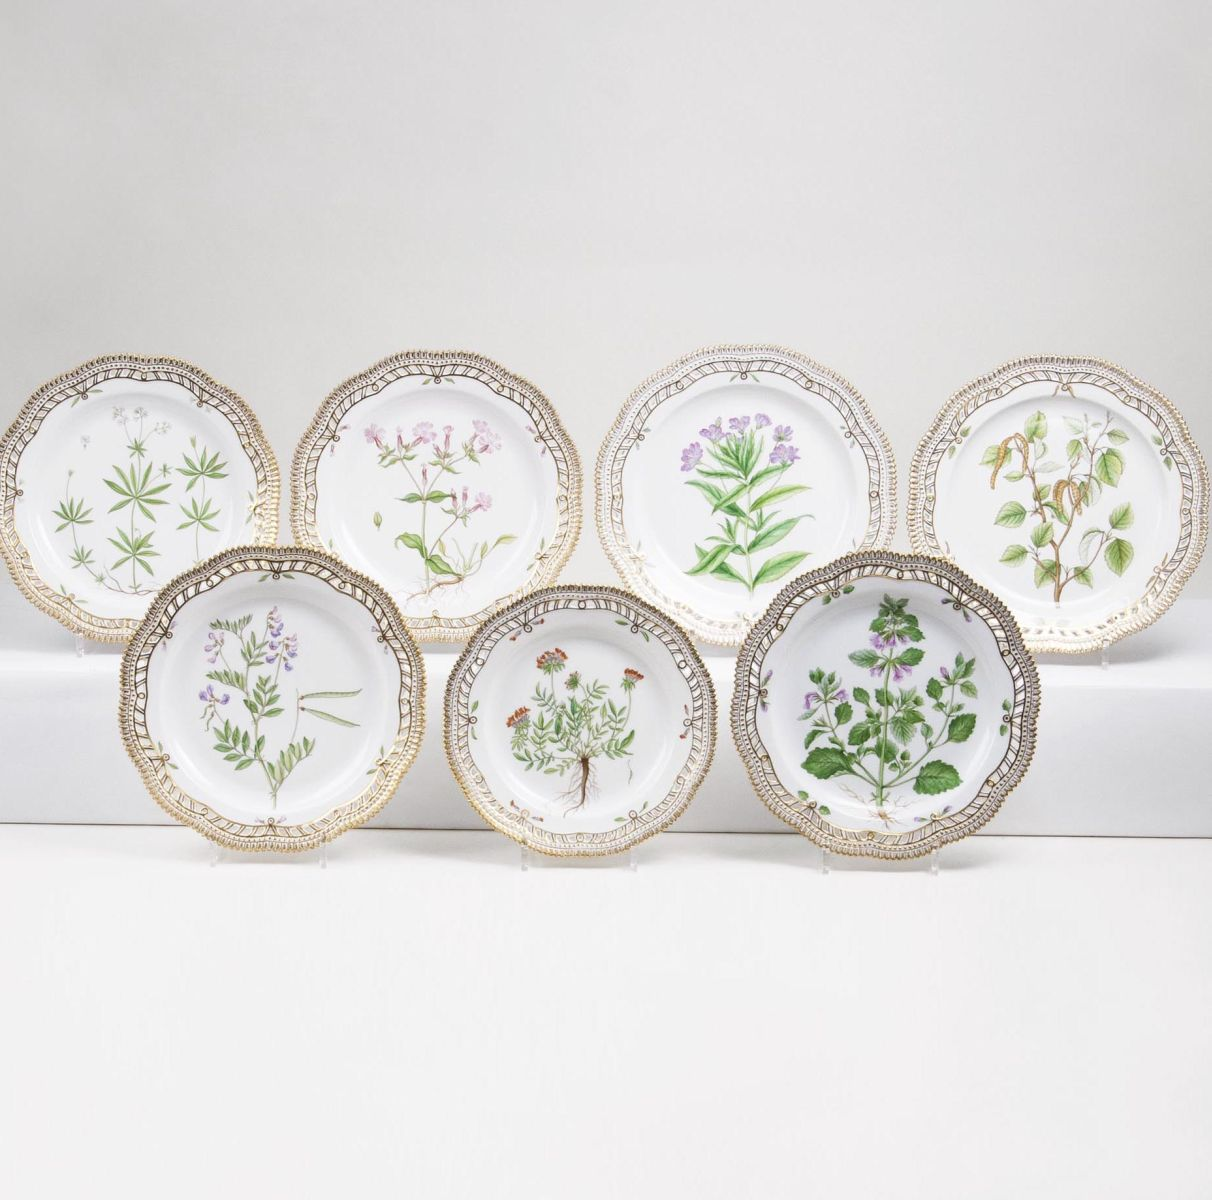 A Set of 7 reticulated Flora Danica Dinner Plates with Botanical Specimens